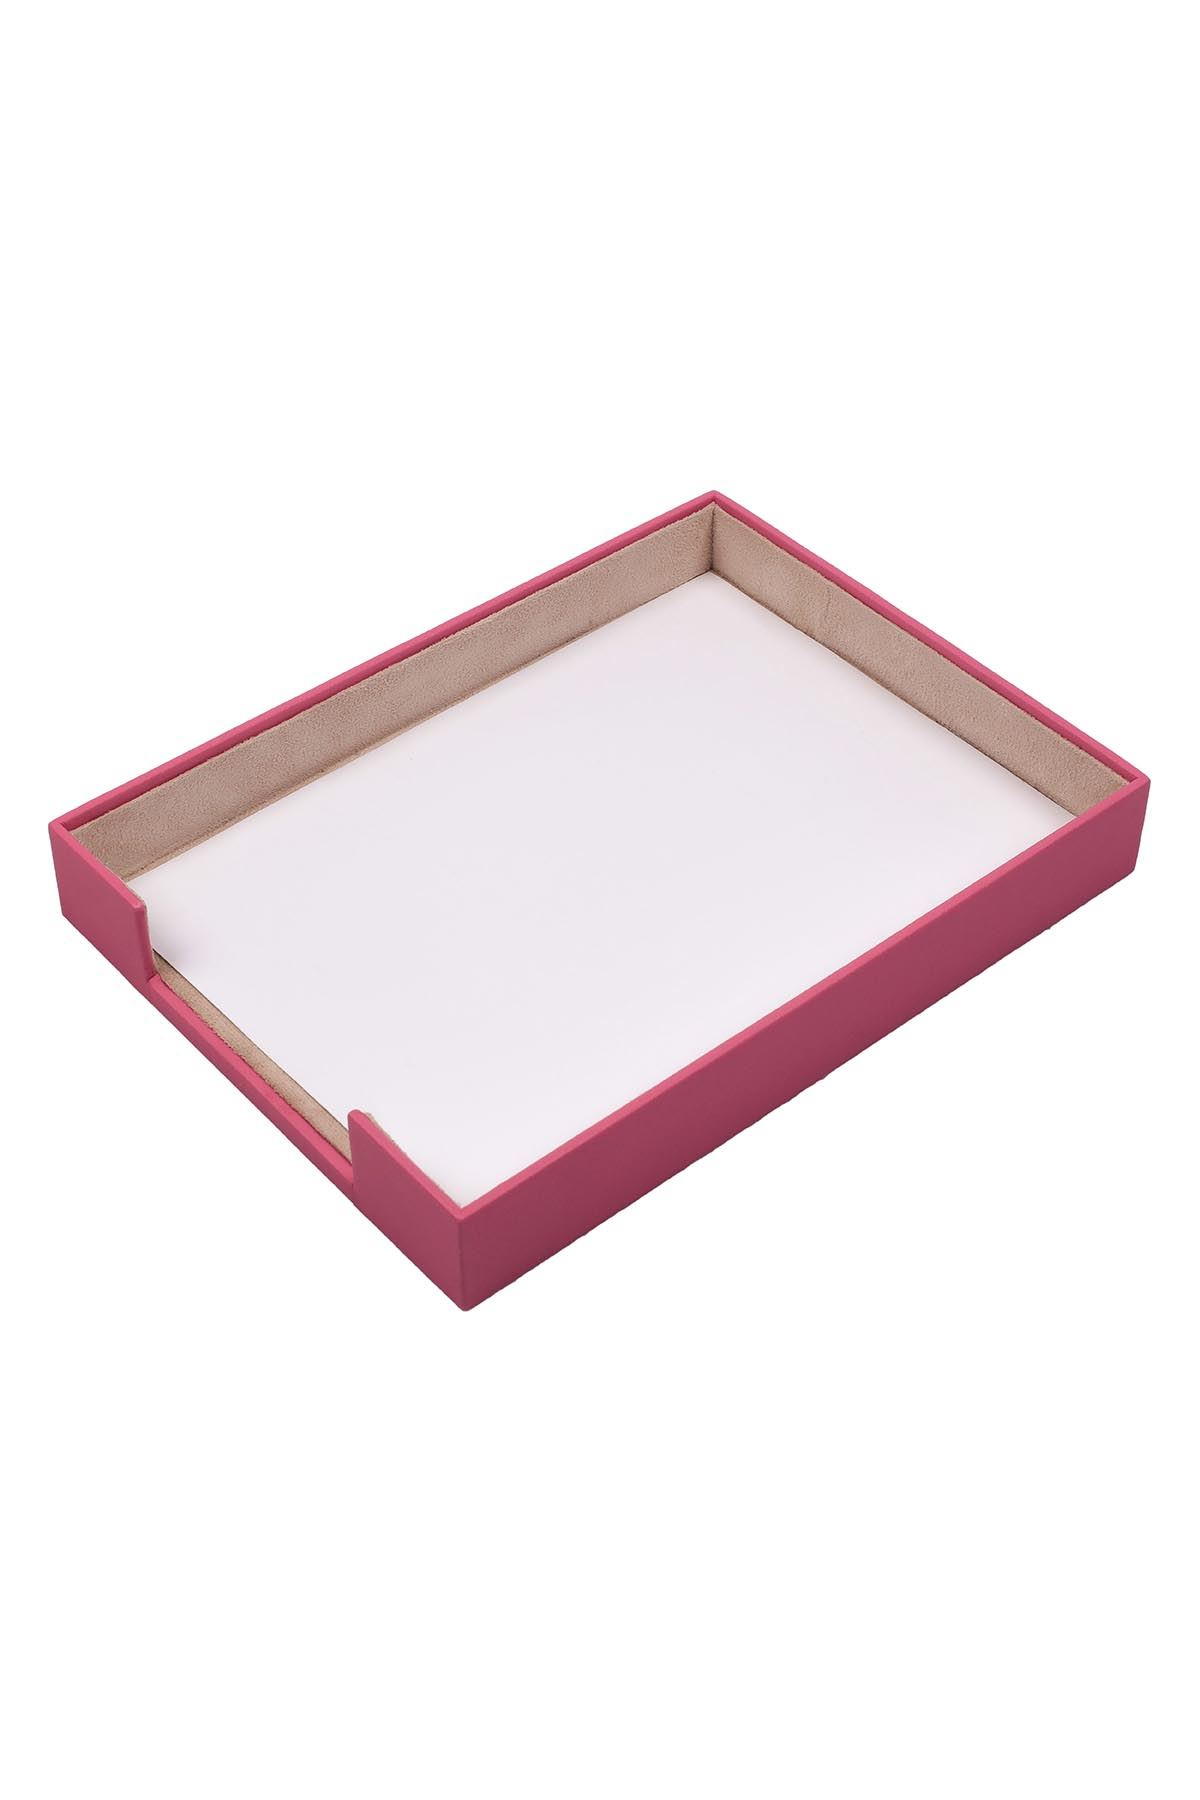 Document Tray Pink| Leather Document Organizer | Leather Tray | Leather Organizer | Document Shelf